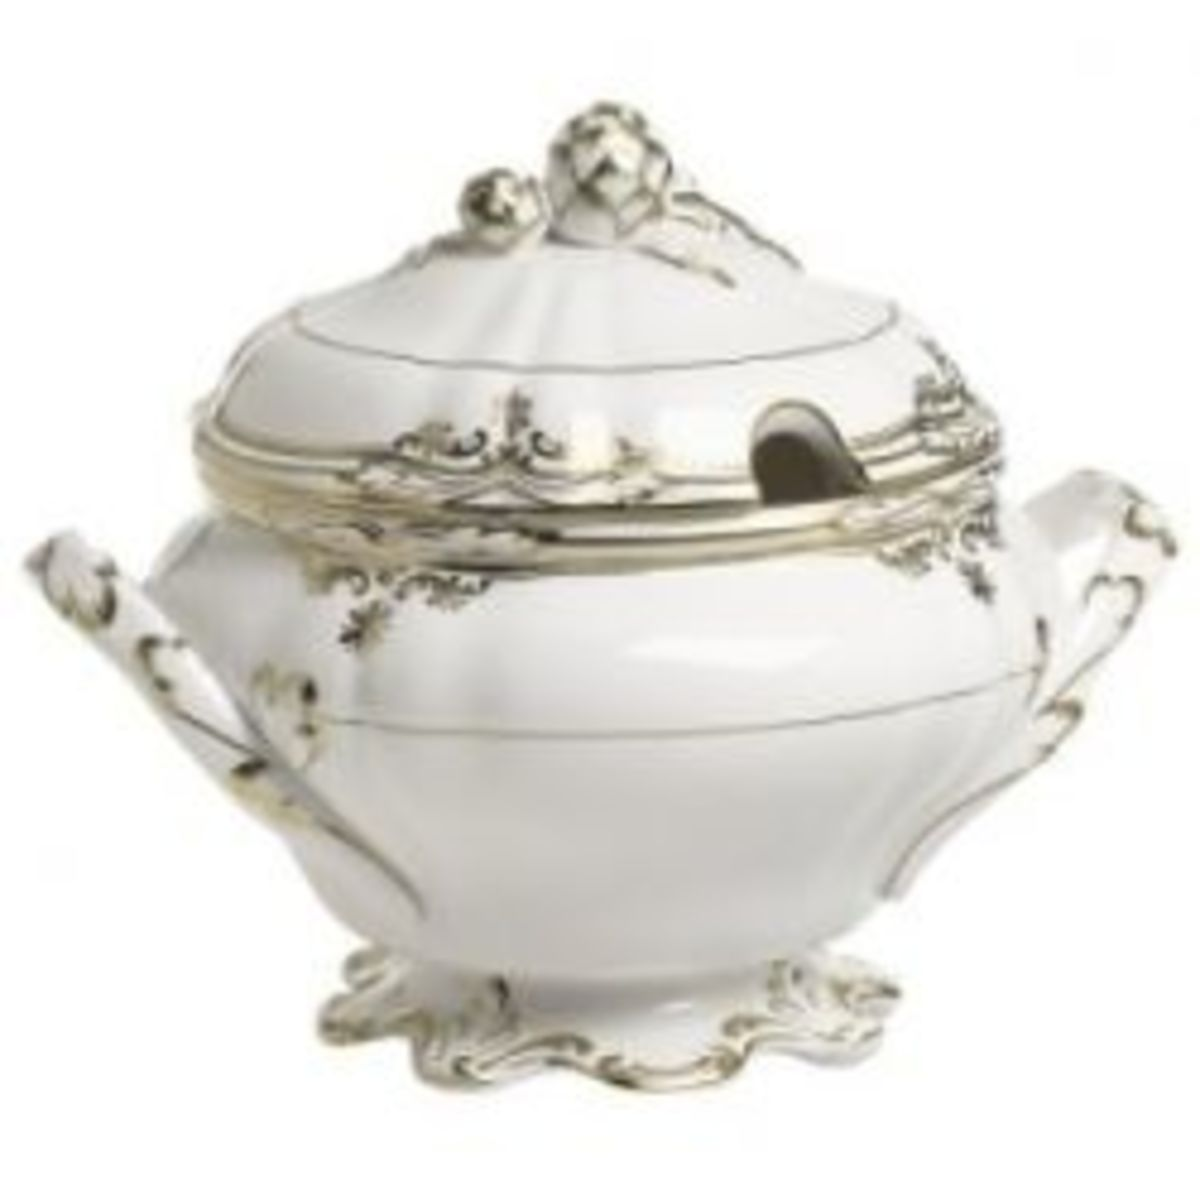 White porcelain with gold filigree accents is a Baroque style.